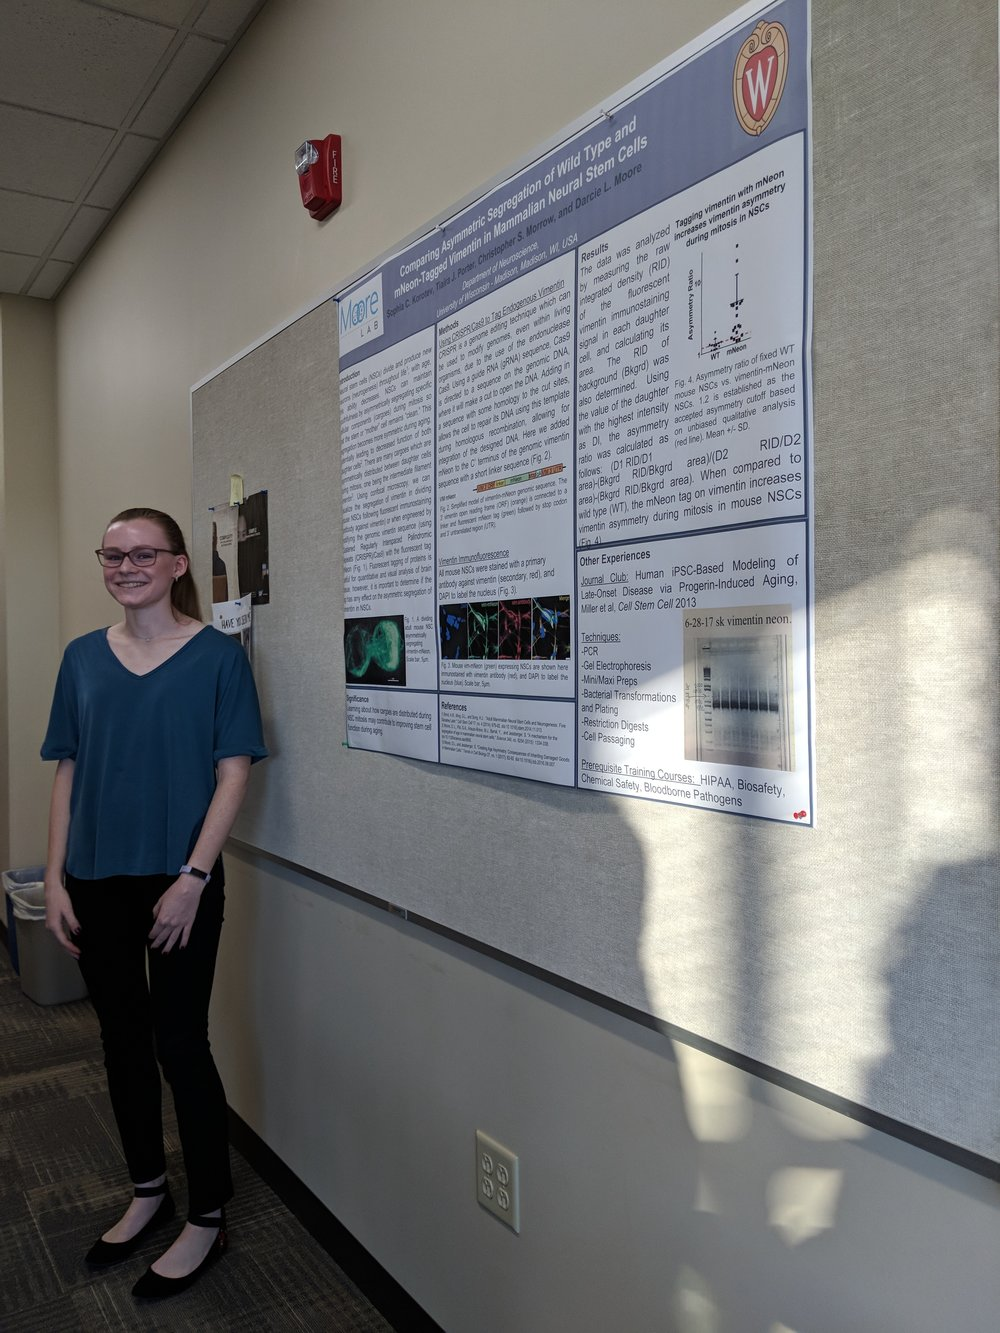 Our high school student, Sophia, did a great job presenting the work she did in the lab!